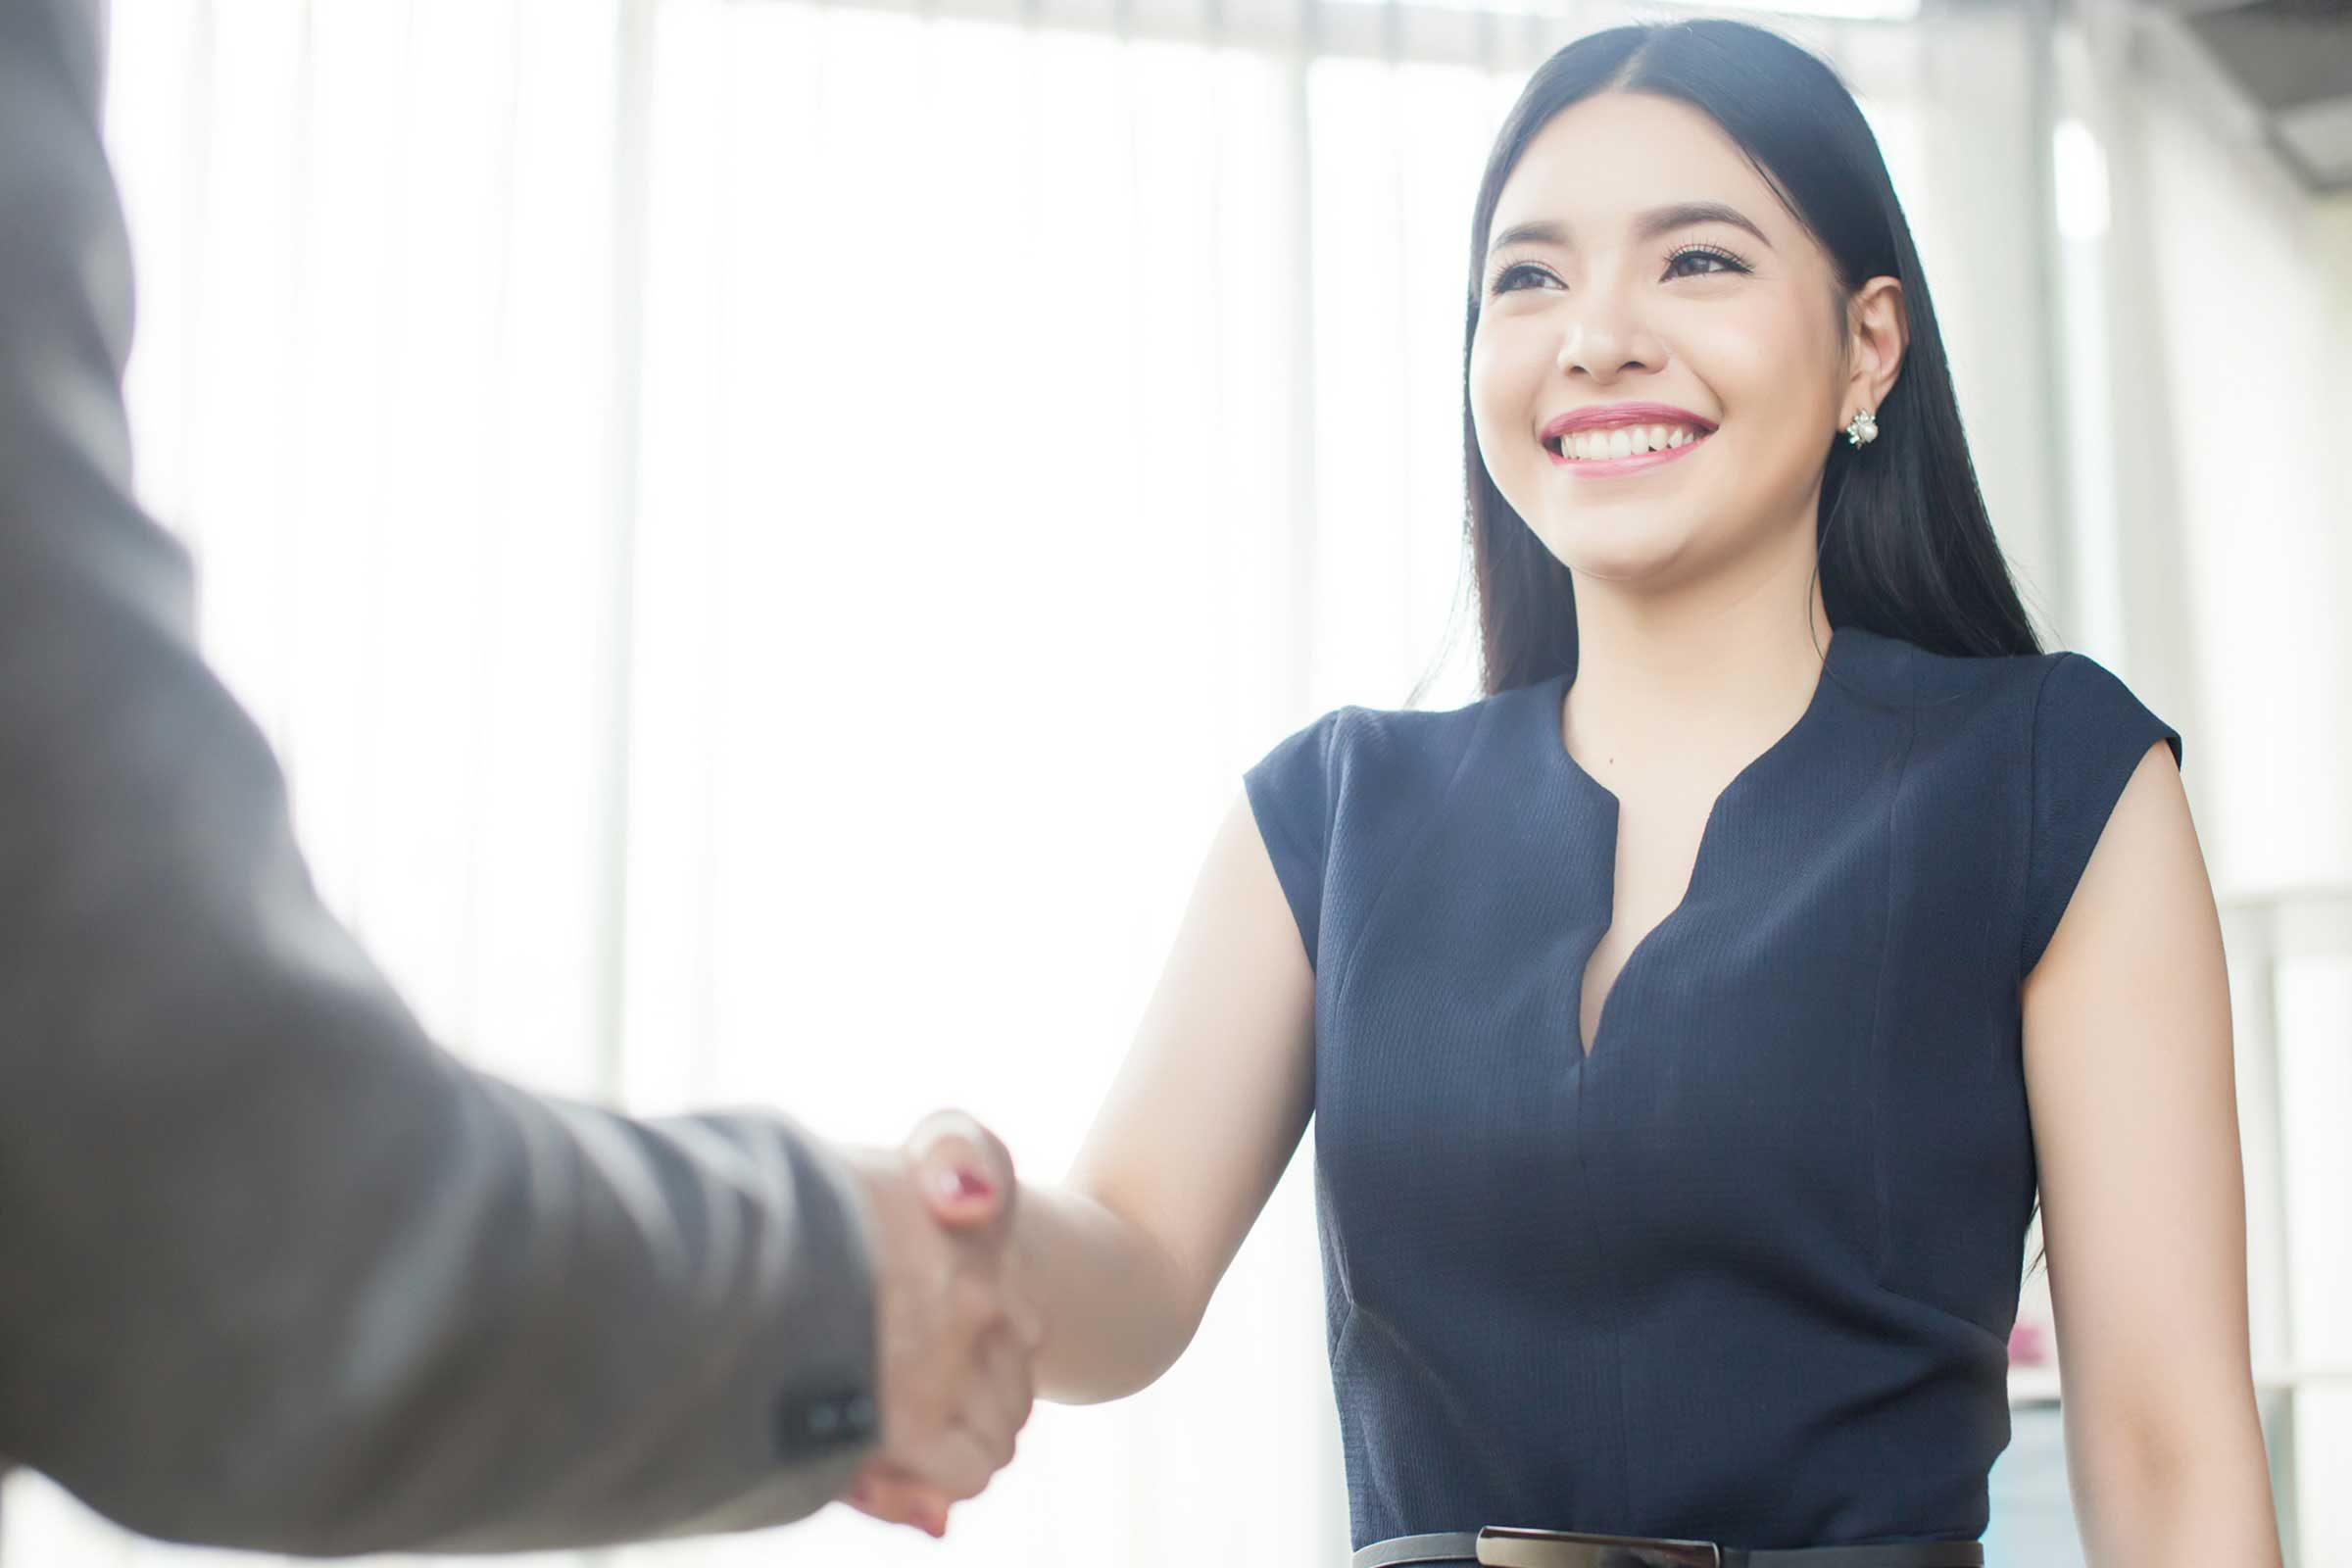 How To Build Confidence Before A Job Interview